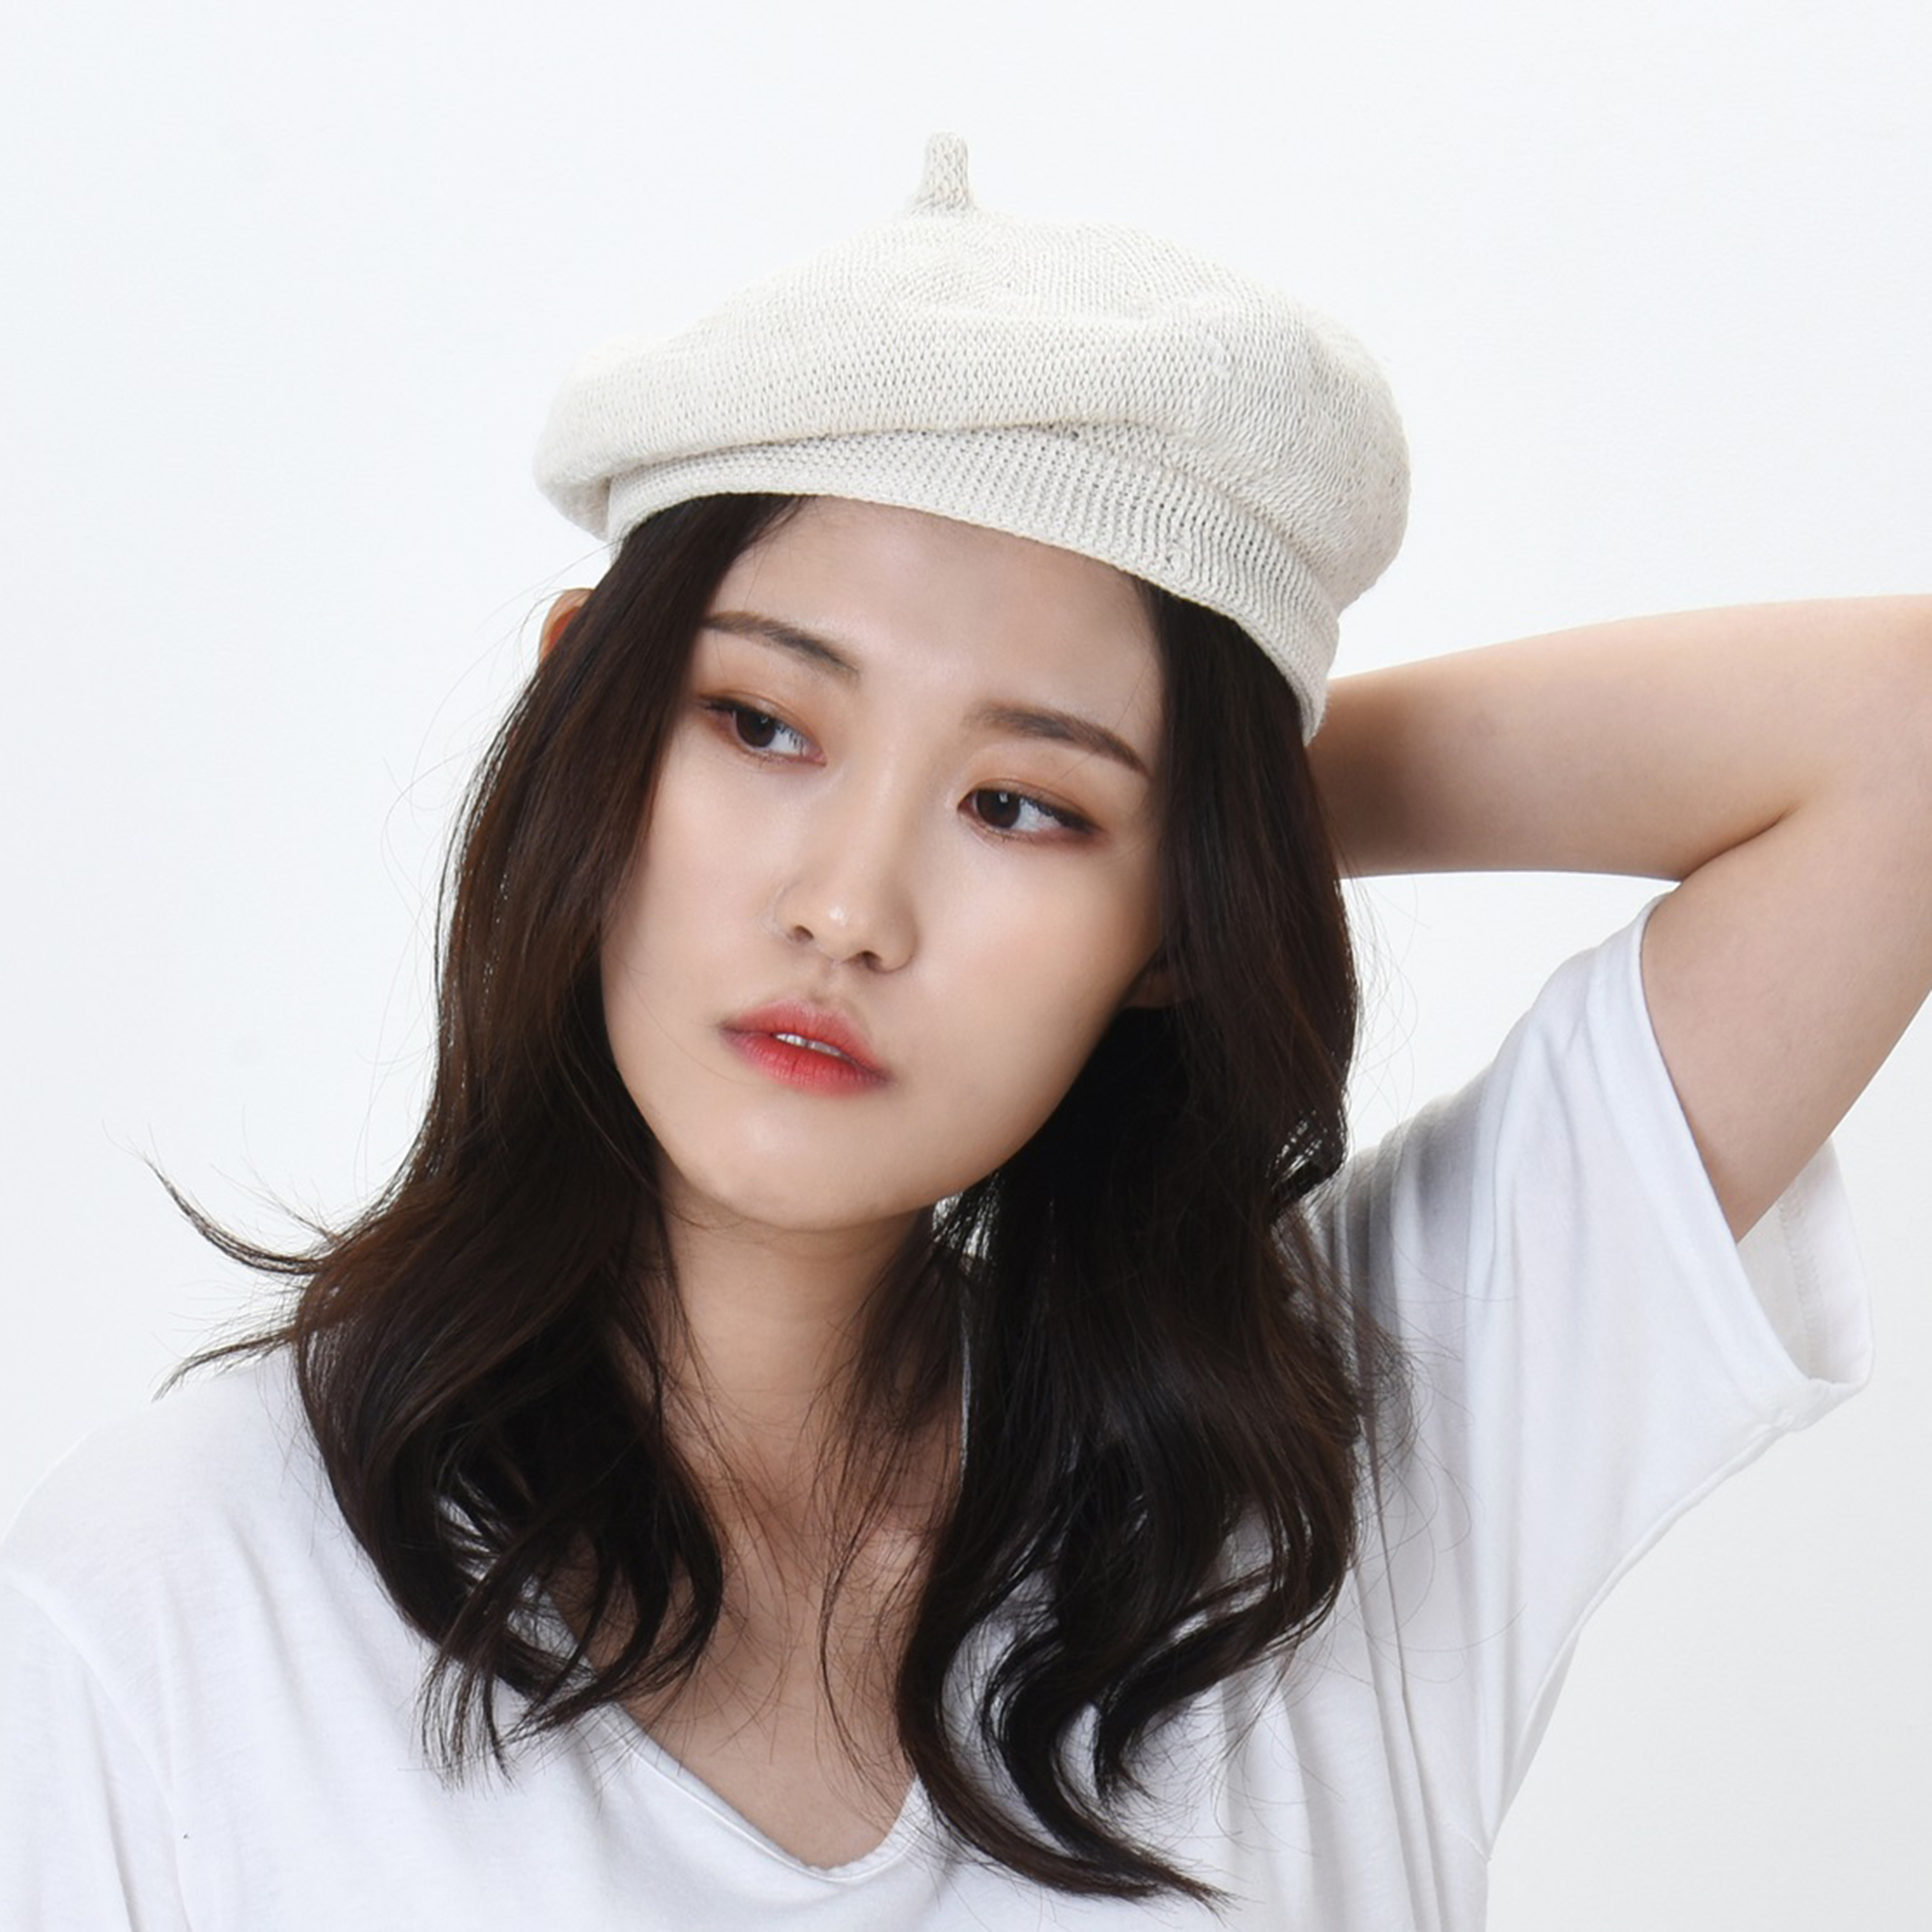 WITHMOONS Beret Hat Breathable Mesh Summer Straw French Berets KRF1165